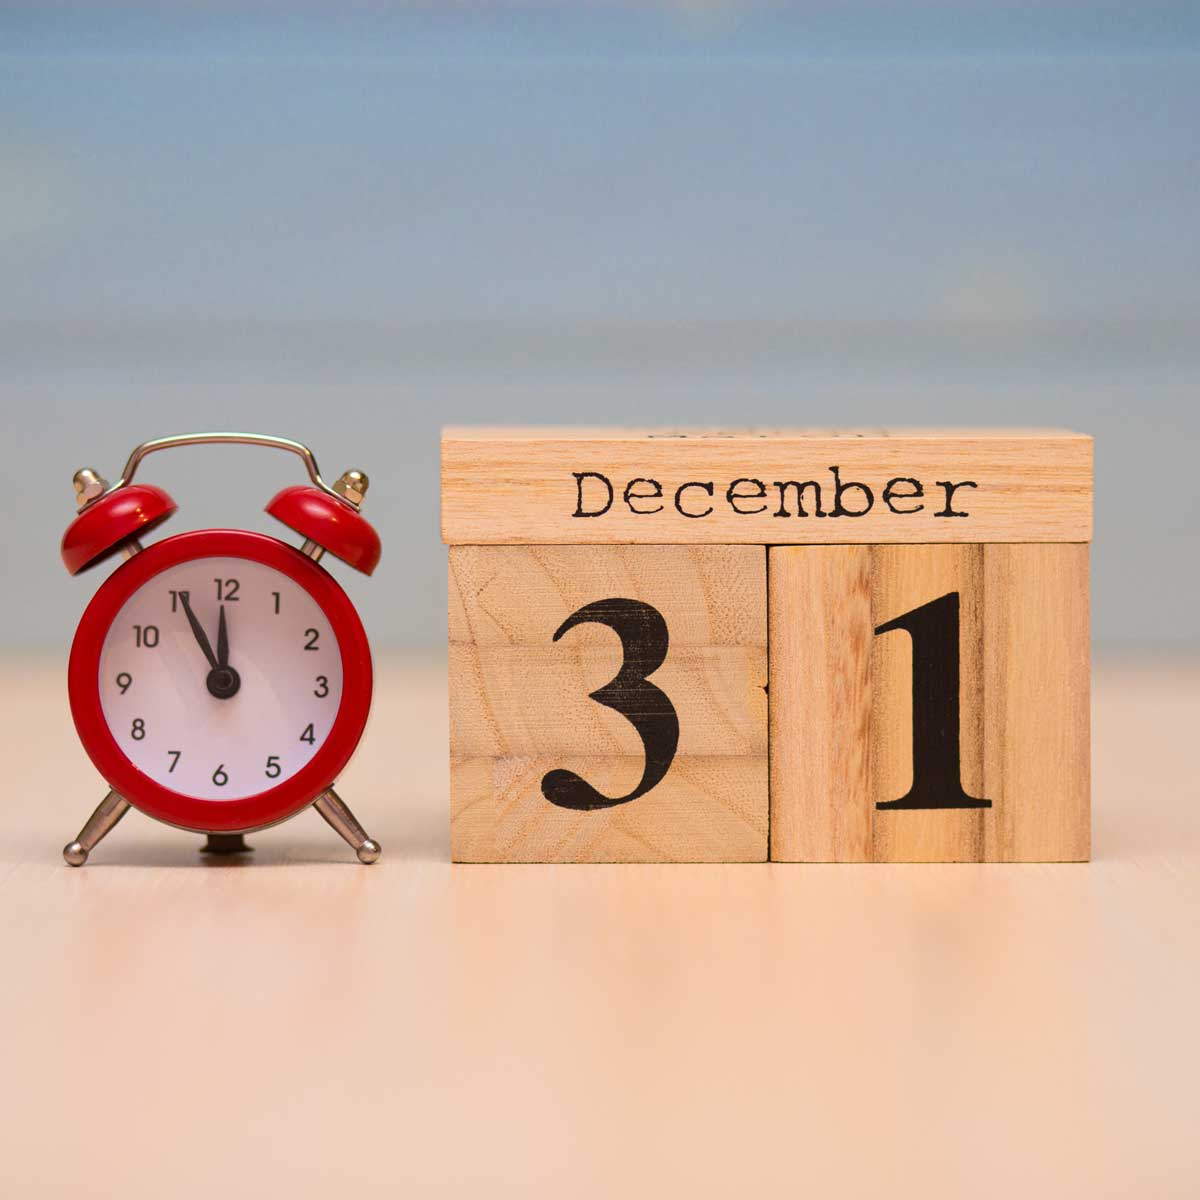 December 31st set on wooden calendar and red alarm clock with blue background.